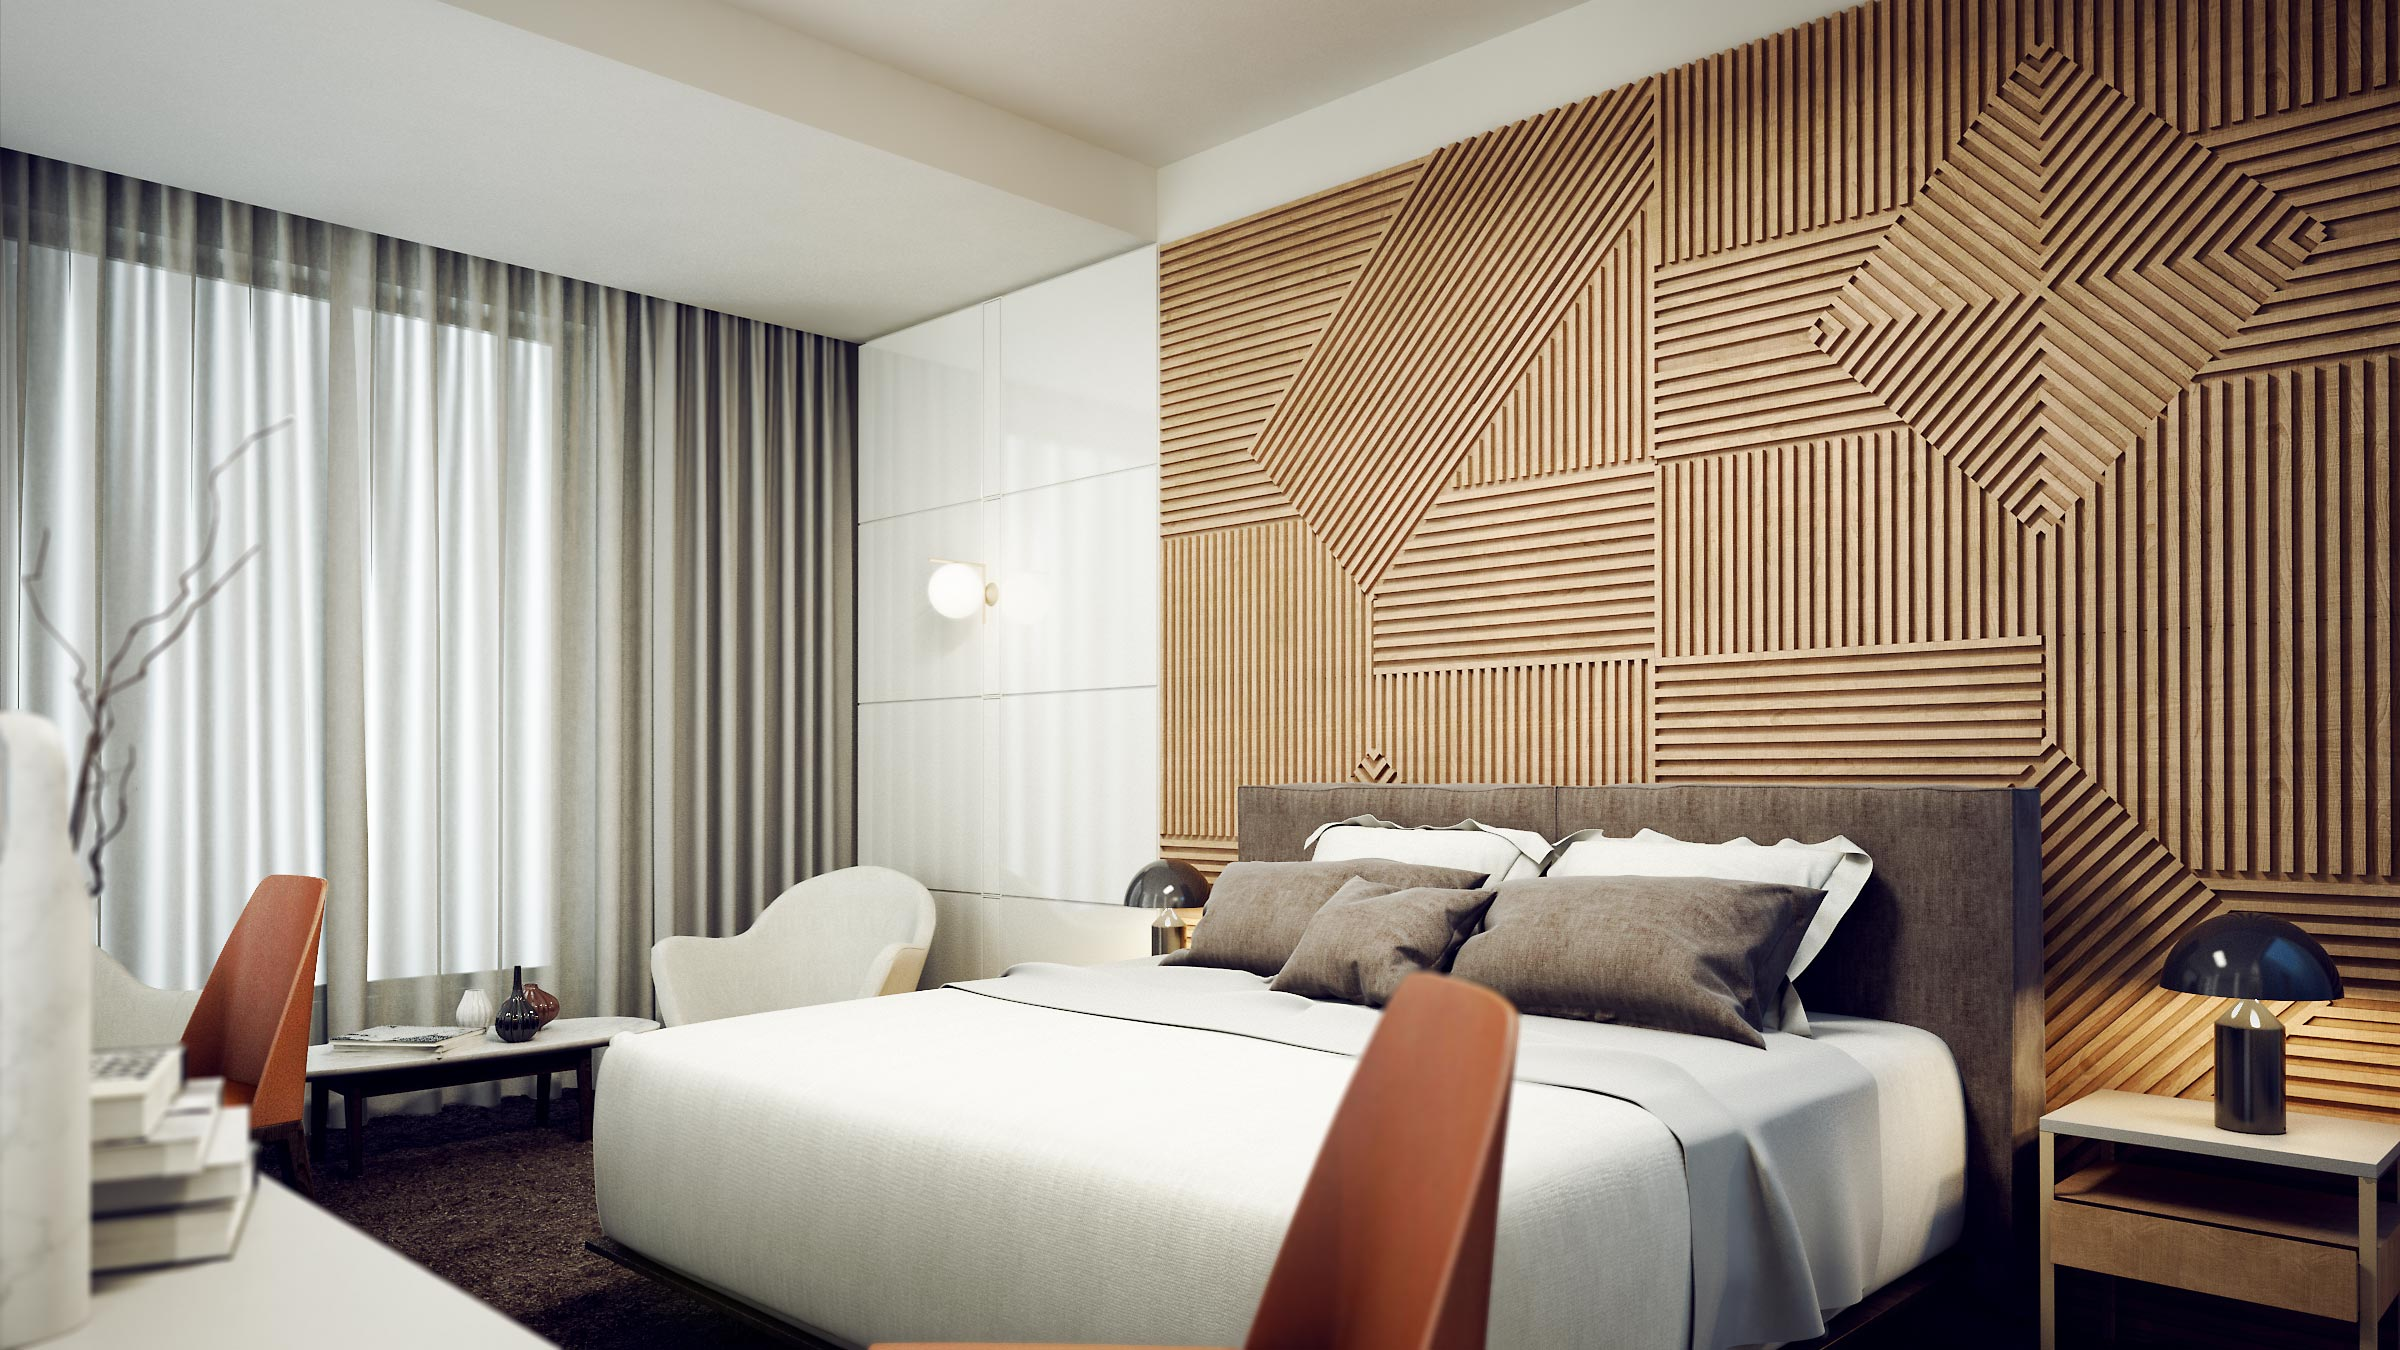 render-hotel-dubai-bedroom-luxury-modern-classic